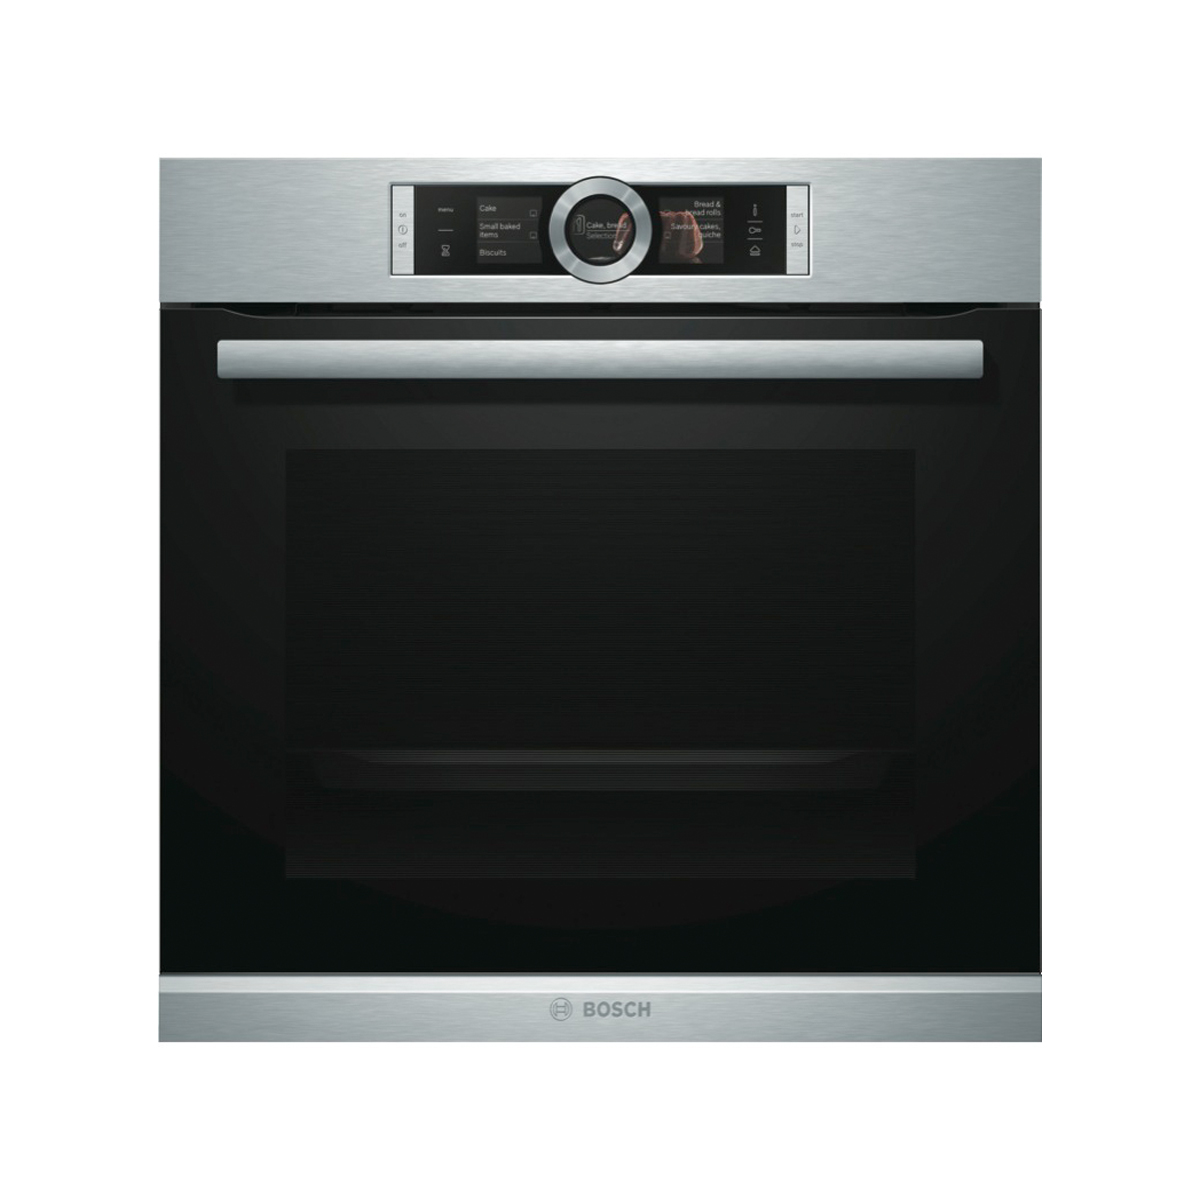 Bosch Electric Oven HRG6767S1A